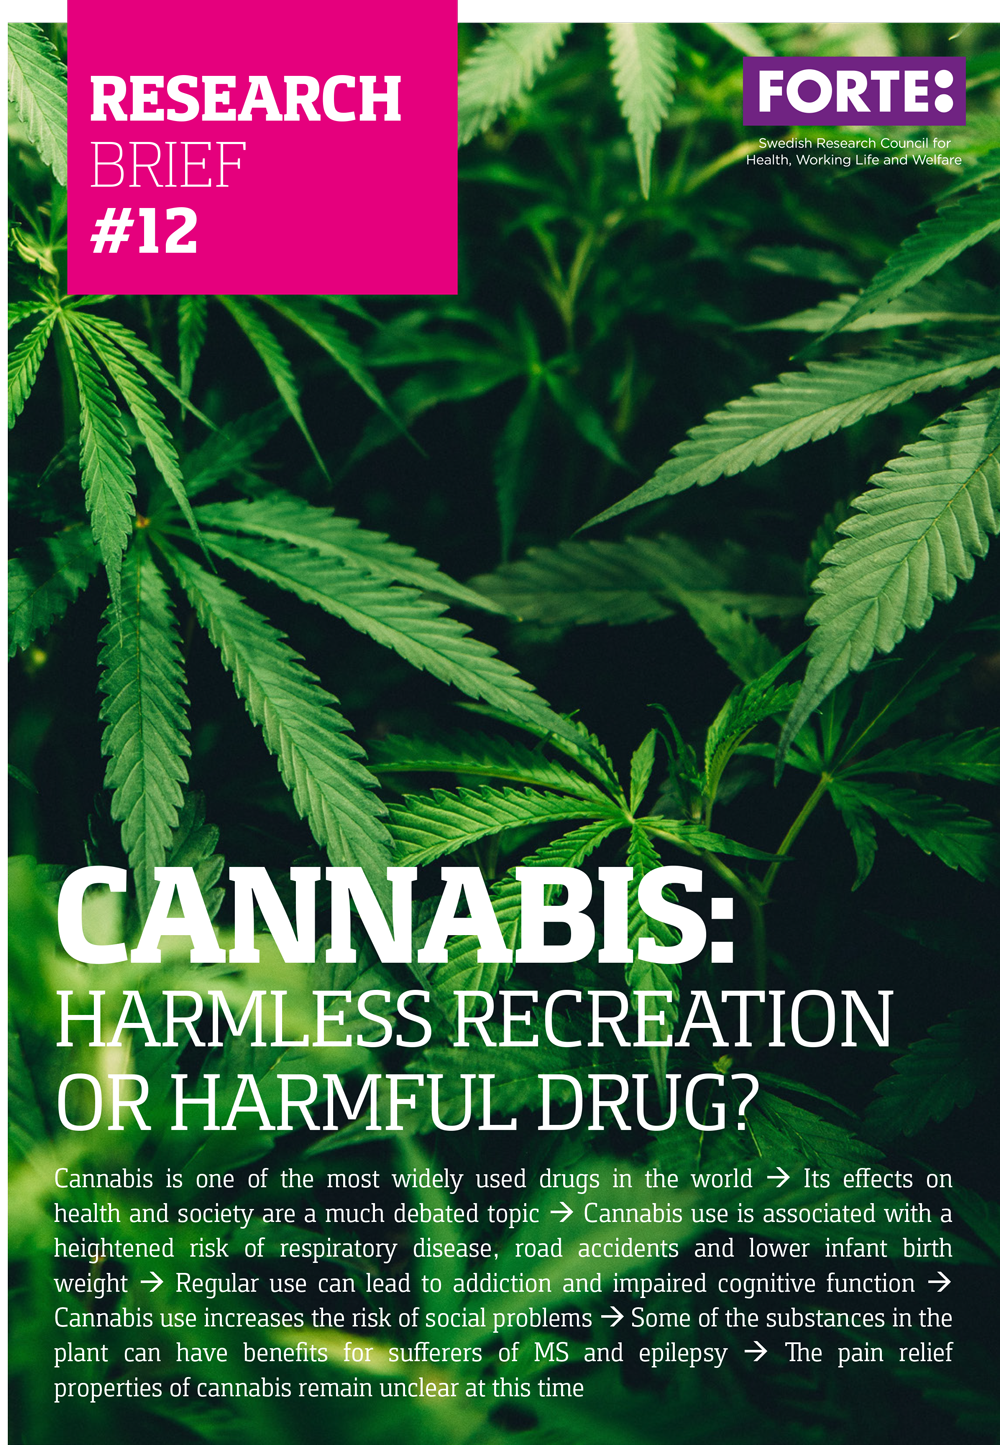 Research brief #12: Cannabis: harmless recreation or harmful drug?